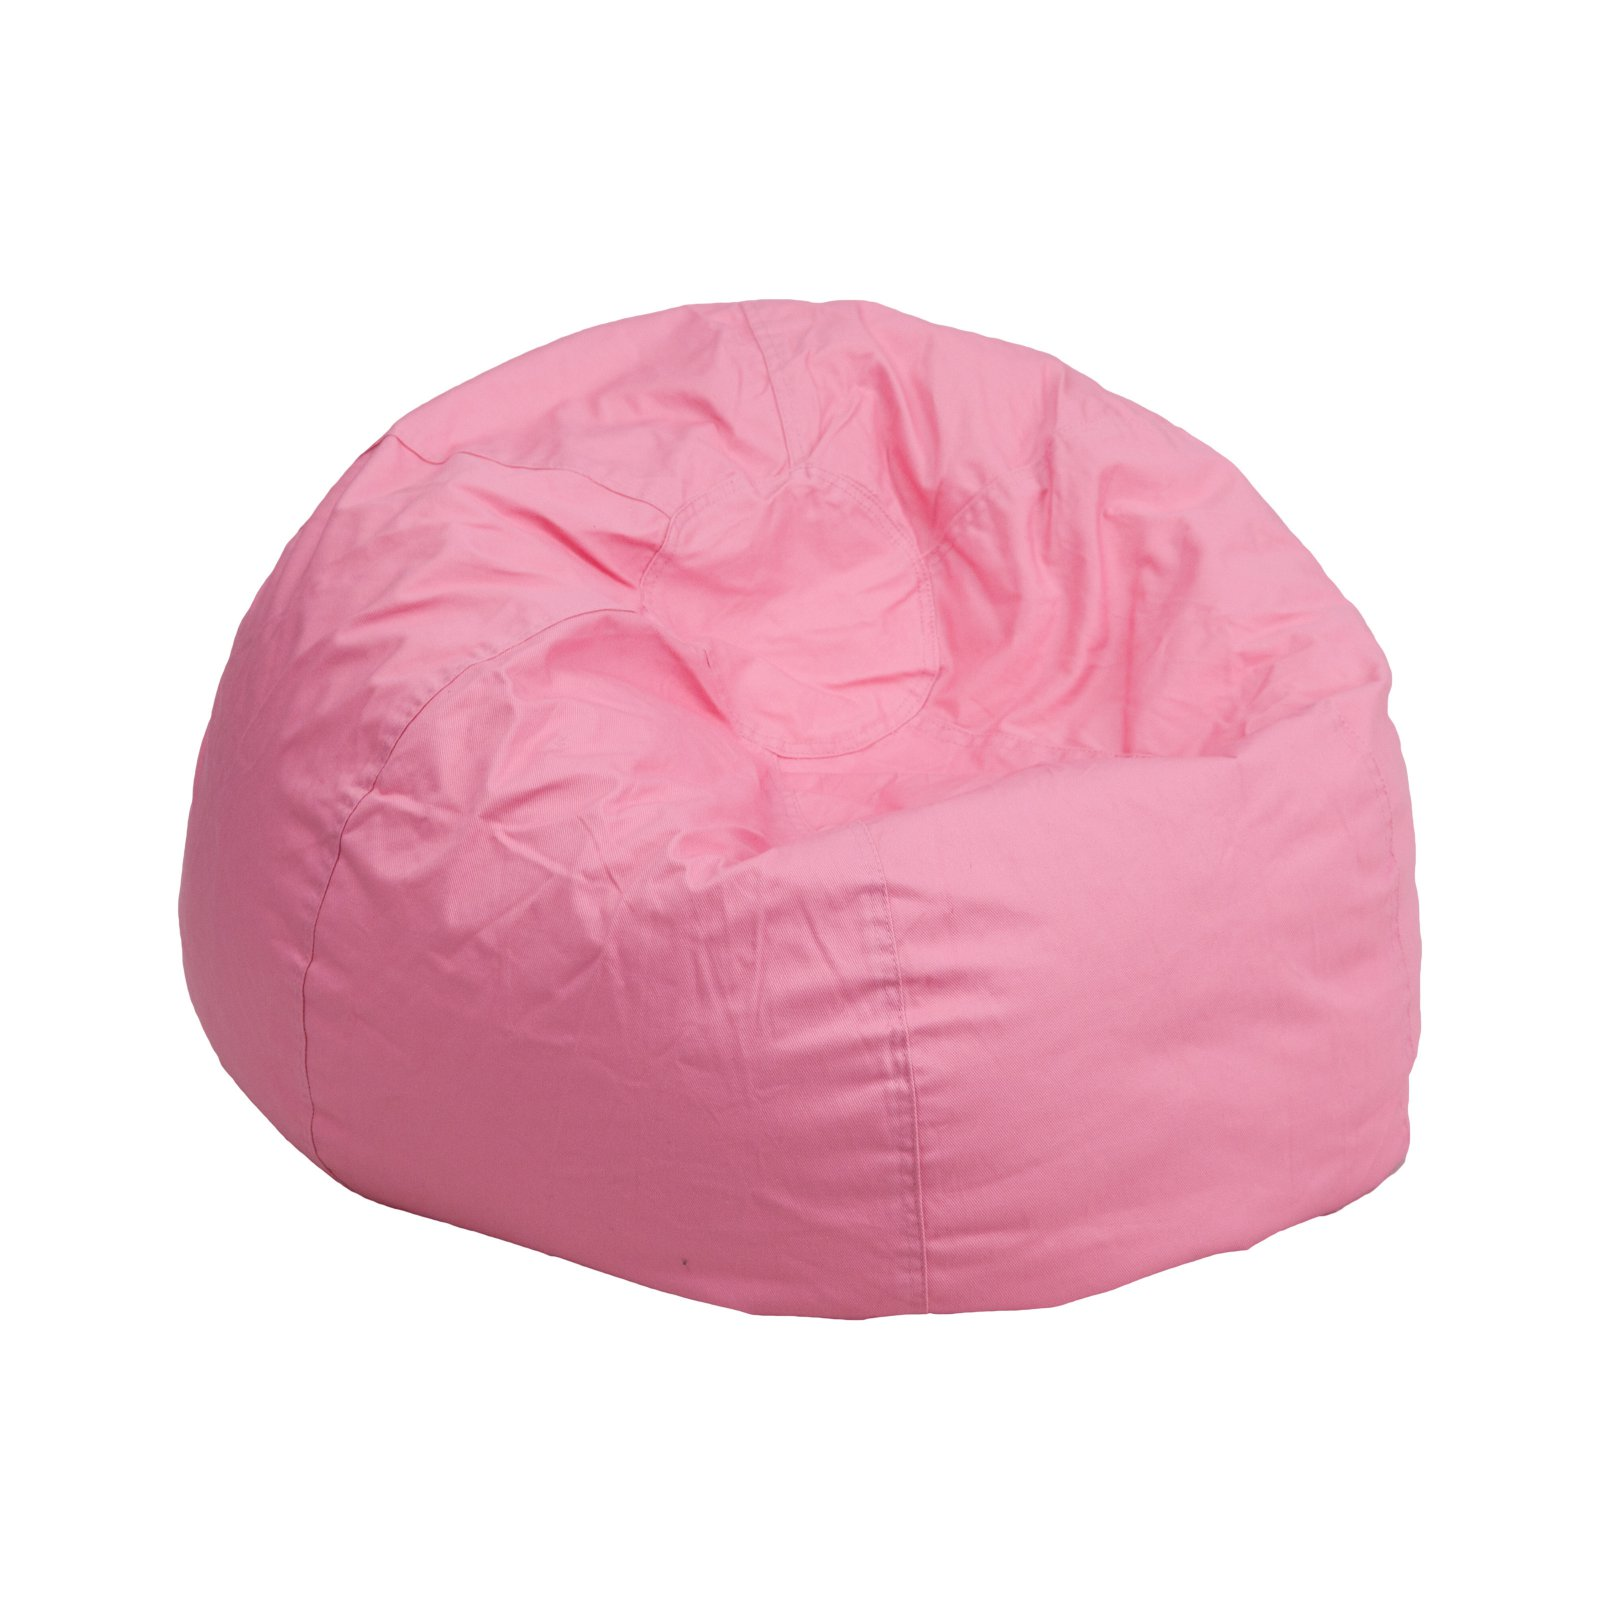 Small Kidu0027s Bean Bag Chair, Multiple Colors   Walmart.com